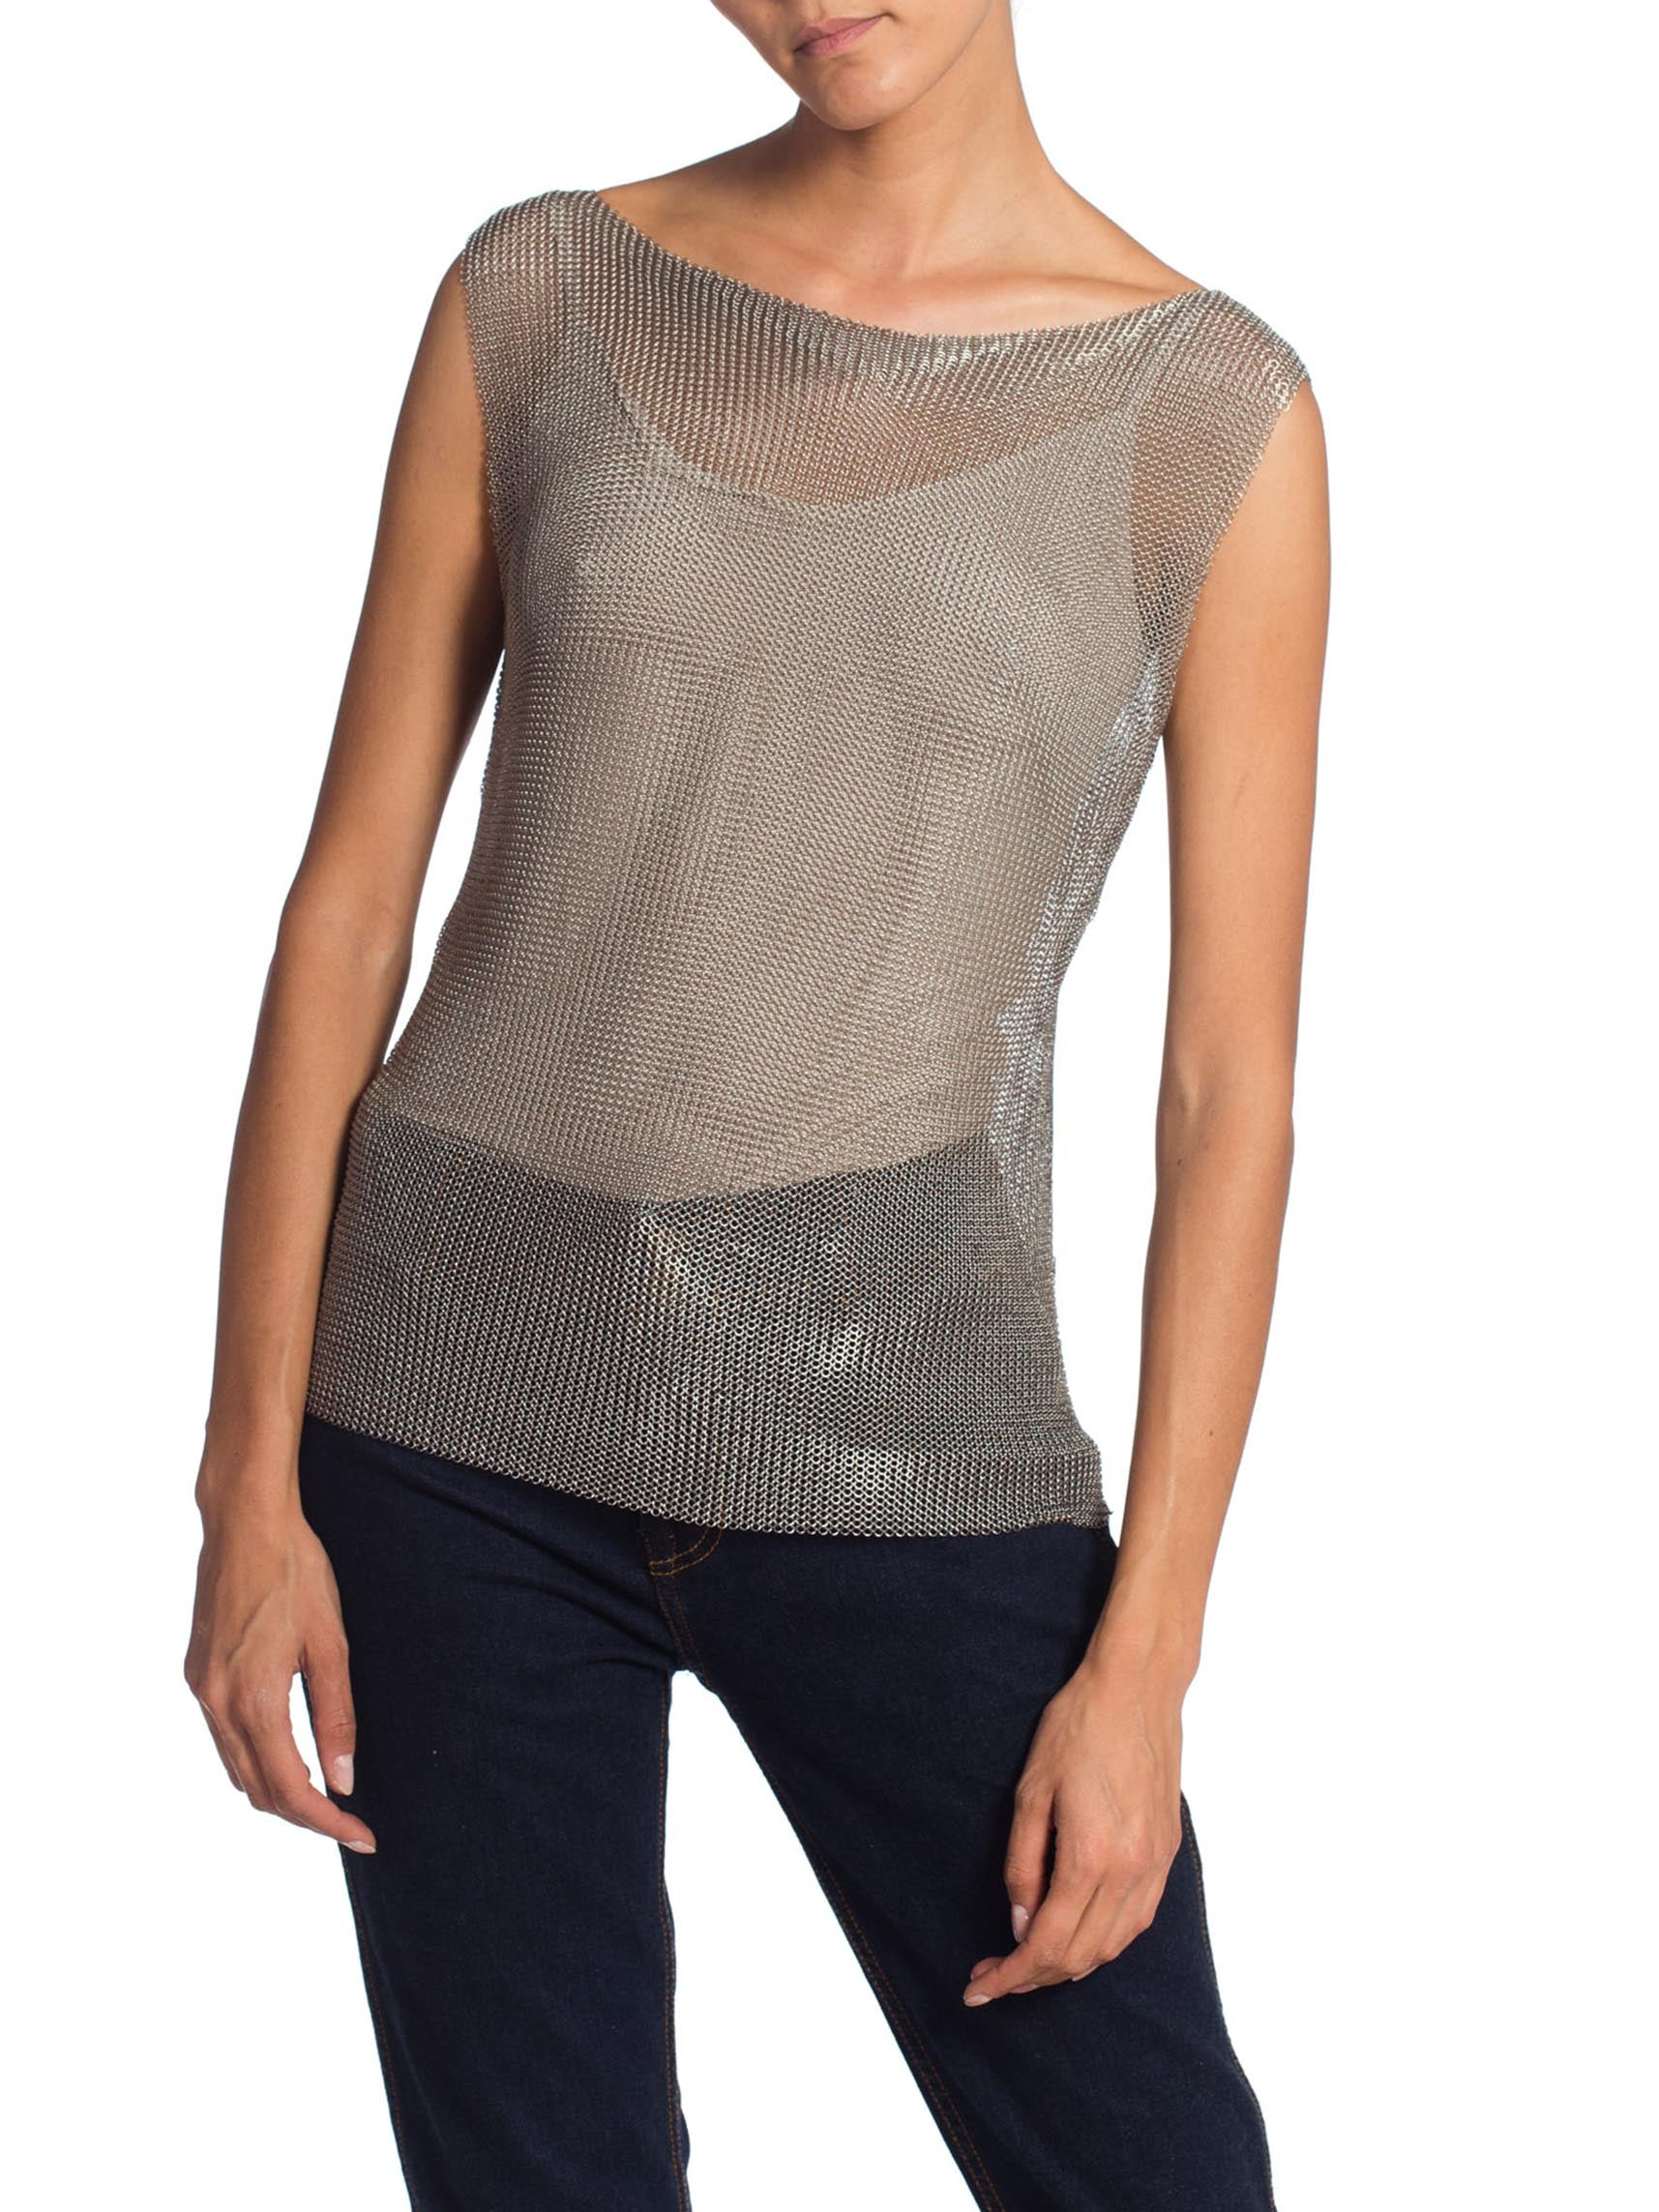 1990S ALEXANDER MCQUEEN Style Silver Chainmail Top